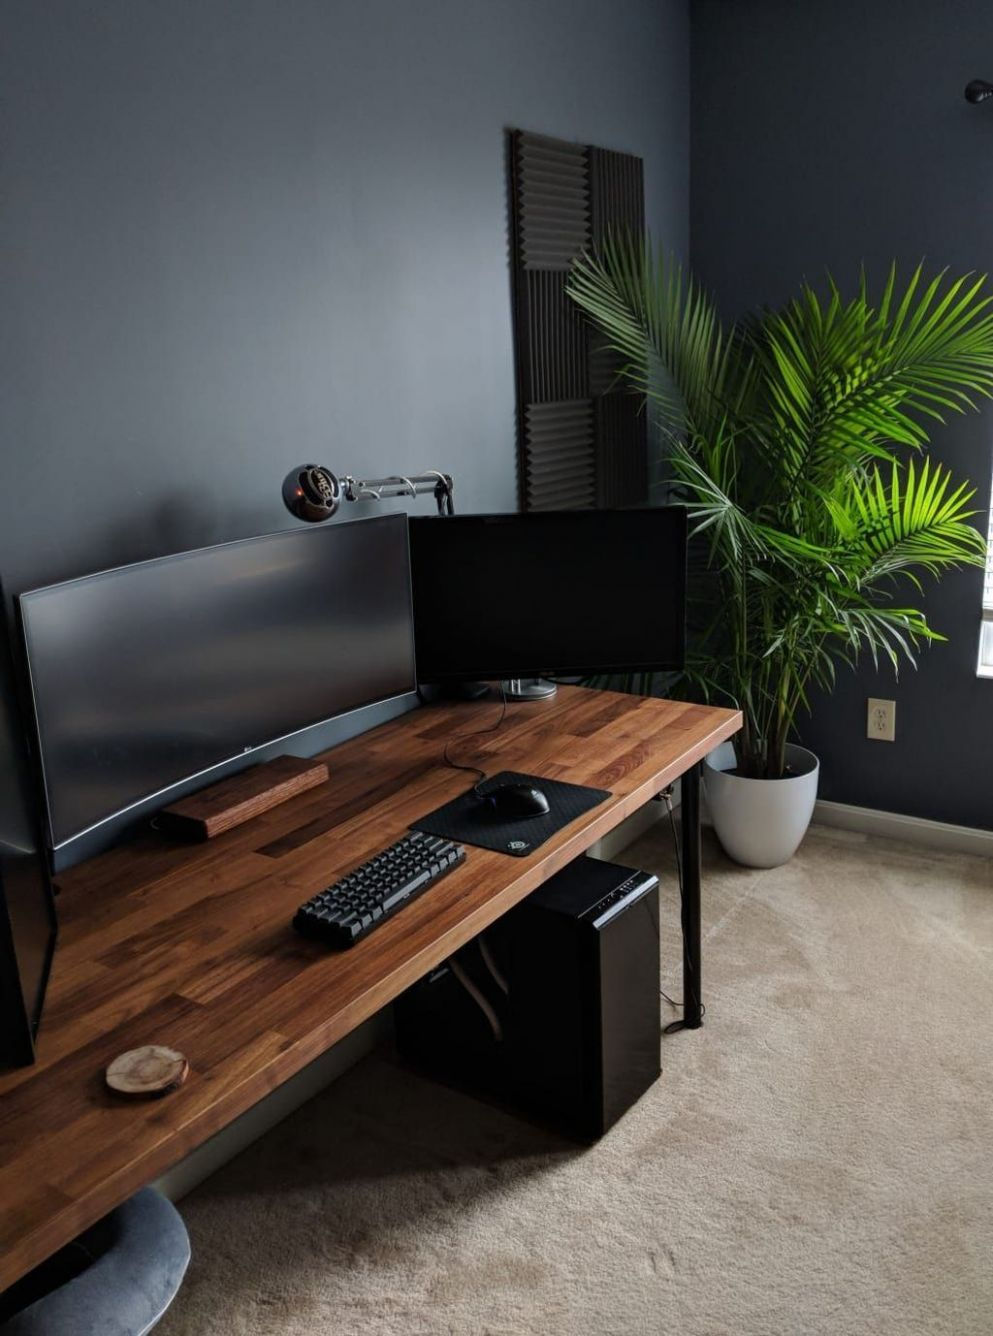 Stunning Gaming Setup Ideas For Your Bedroom That Will Amaze You ..